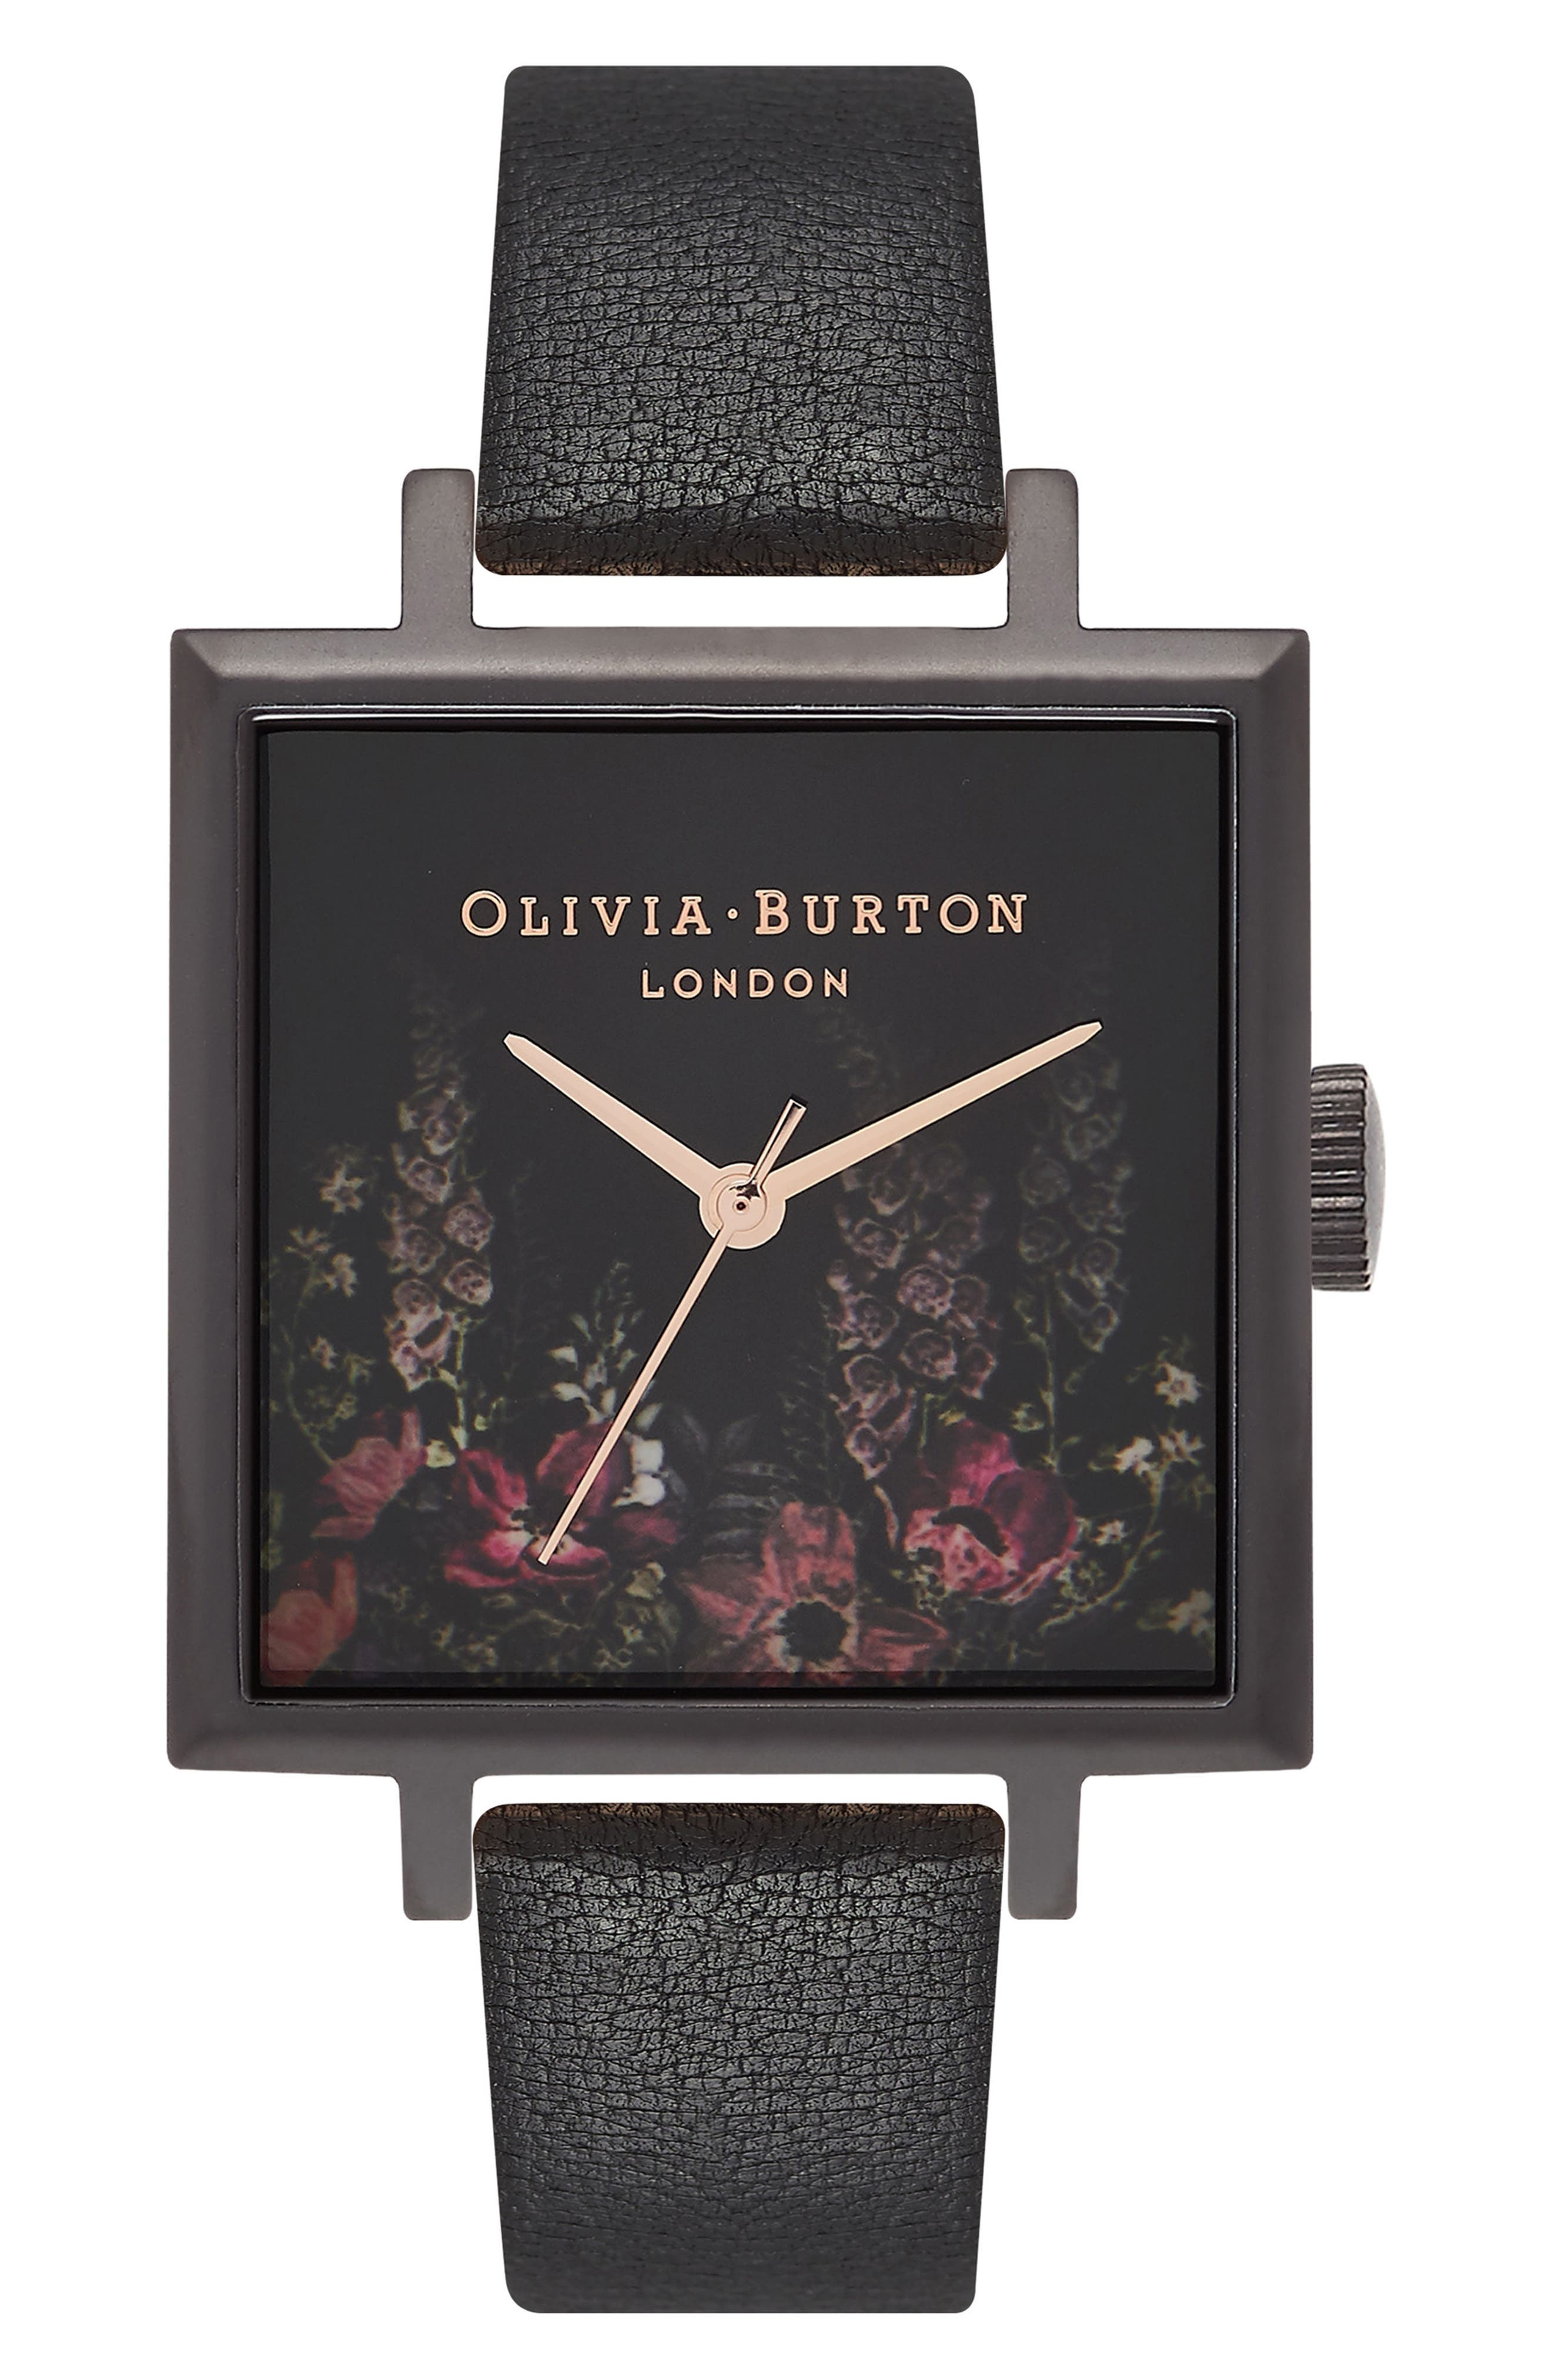 Oliva Burton After Dark Floral Big Square Leather Strap Watch, 38mm